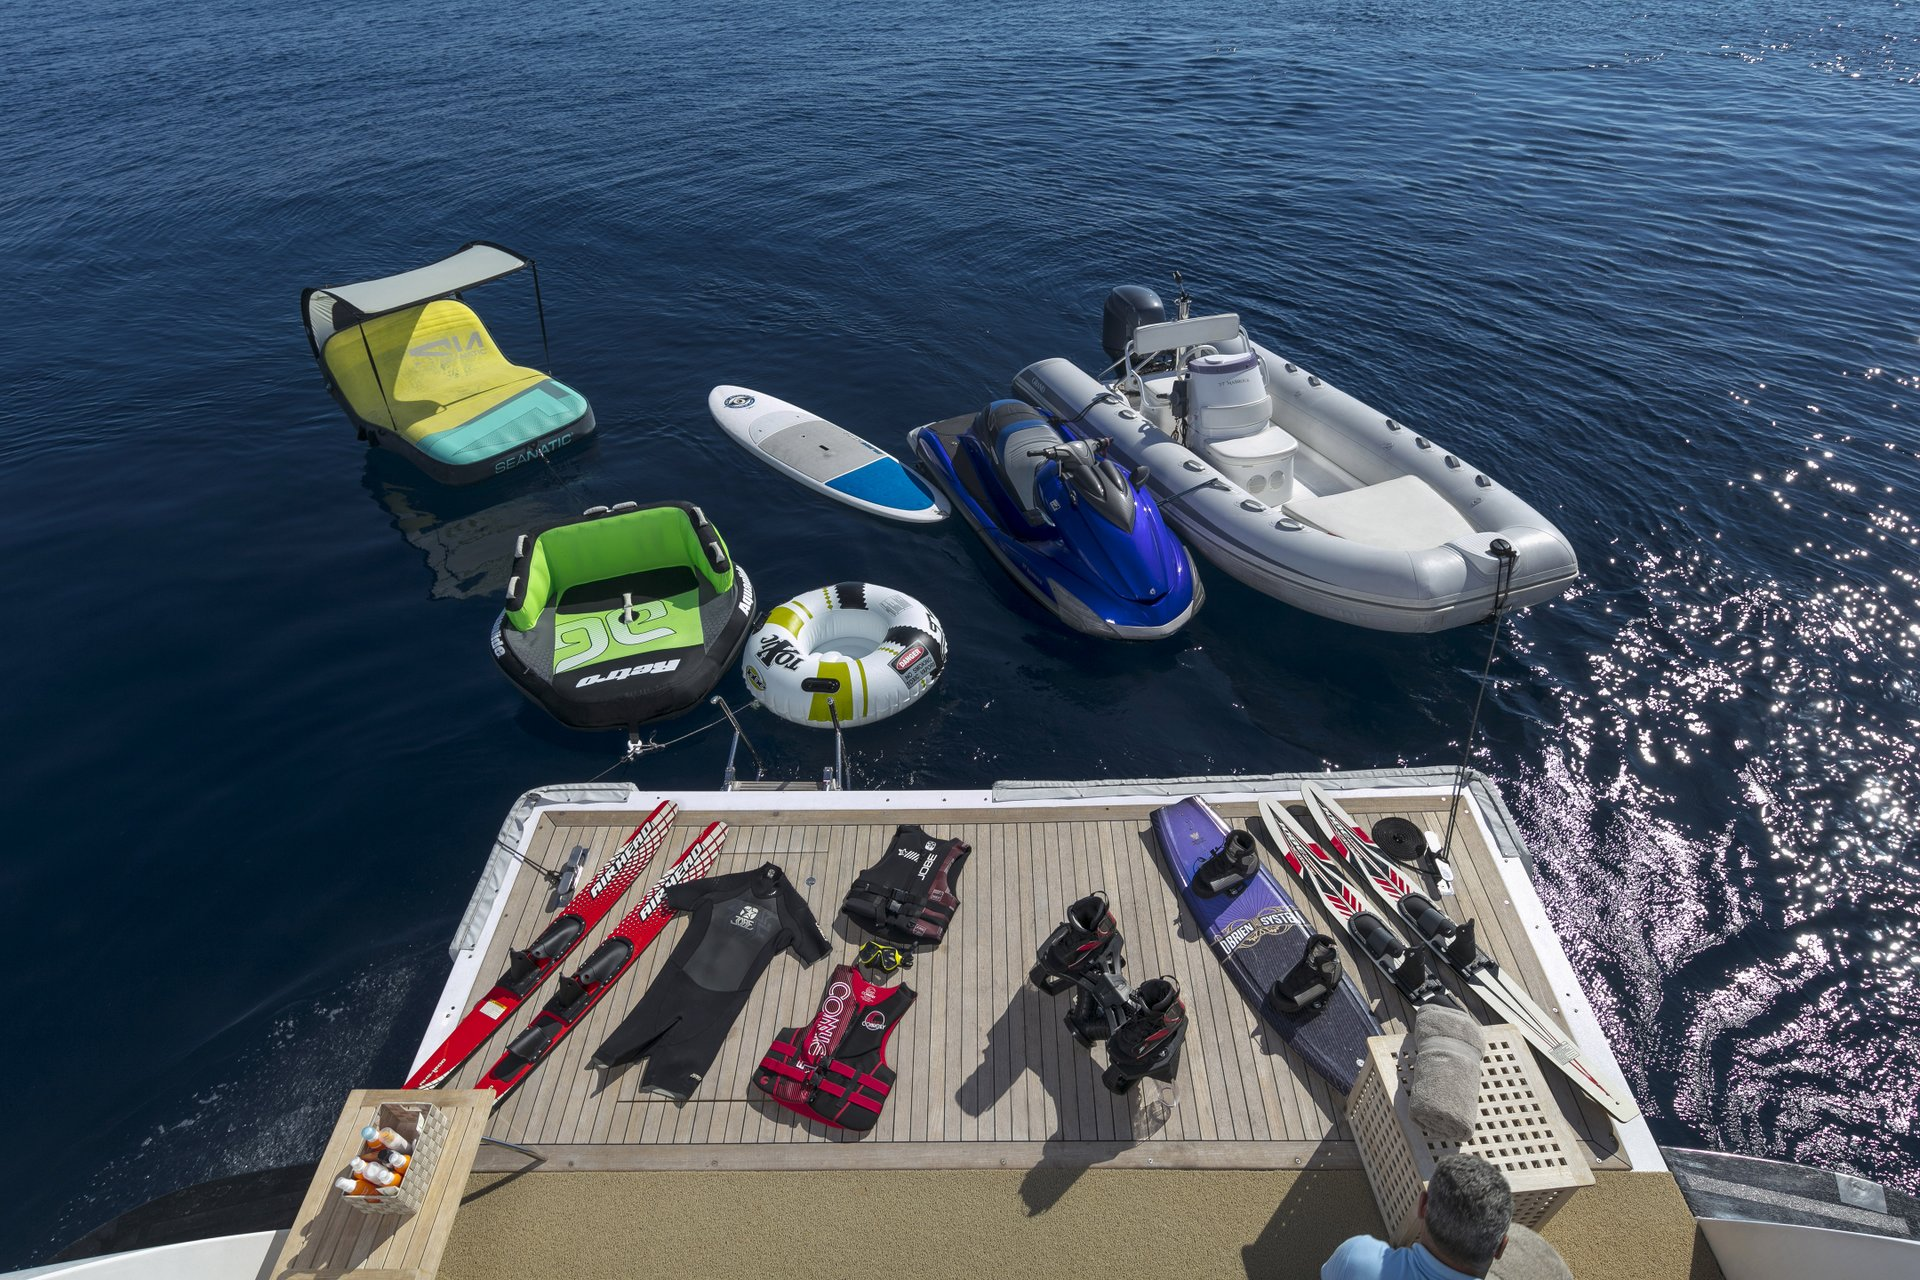 M/Y MABROUK yacht for charter water sports